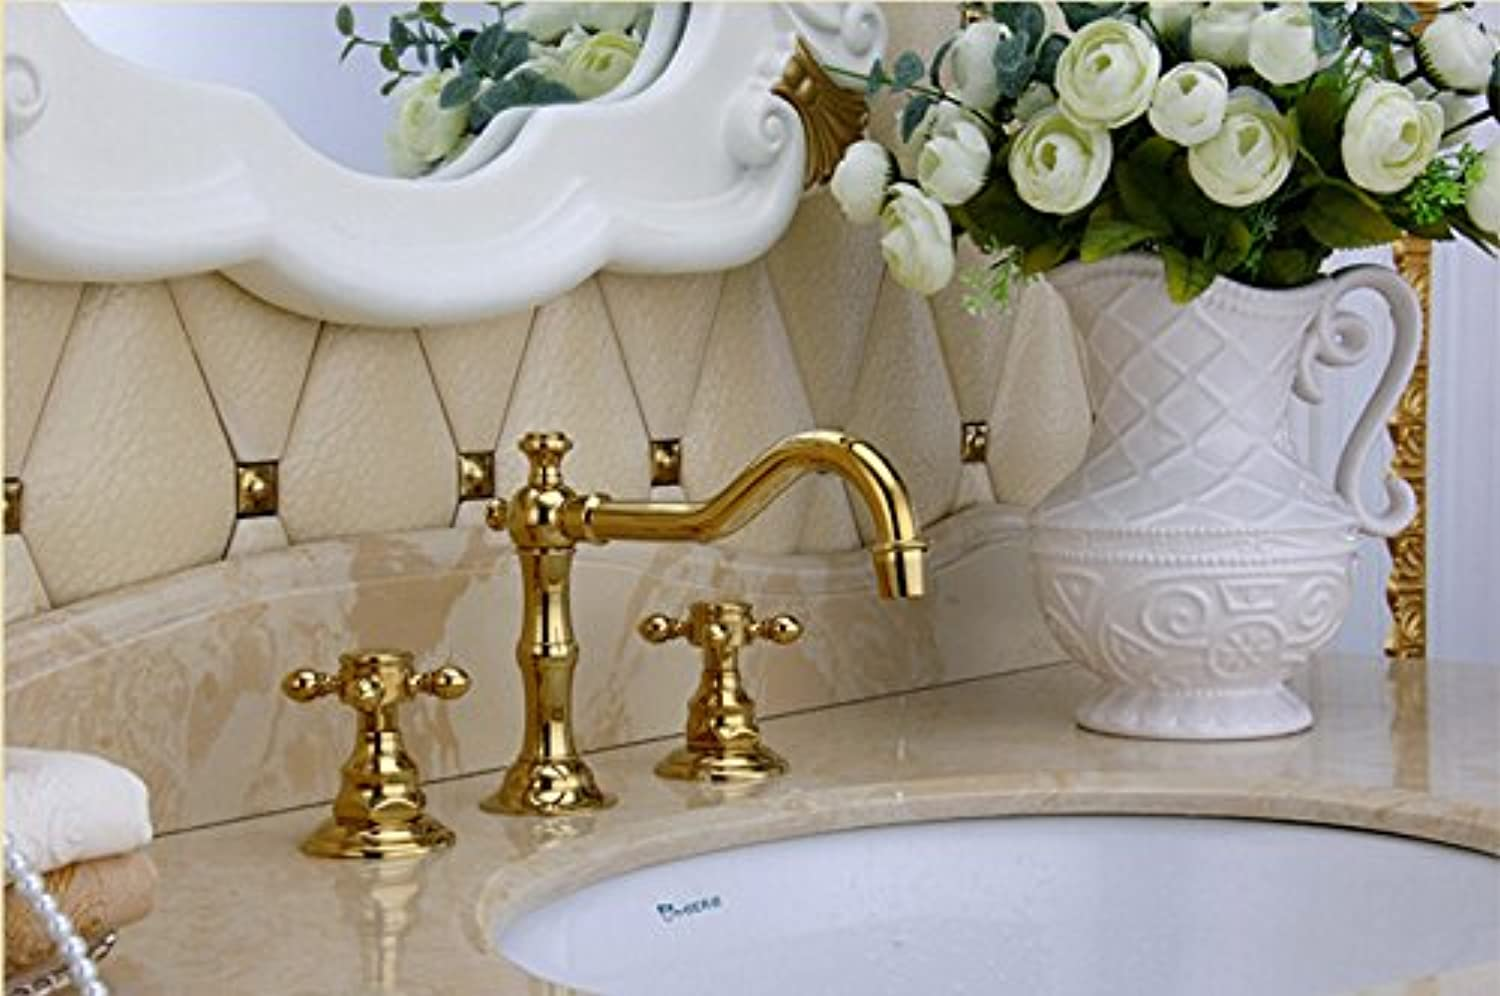 Maifeini The Arrival Of The New High Quality gold Finished Deluxe Bathroom Wide Heat Sink Faucet Basin Series, Please Click Mixer